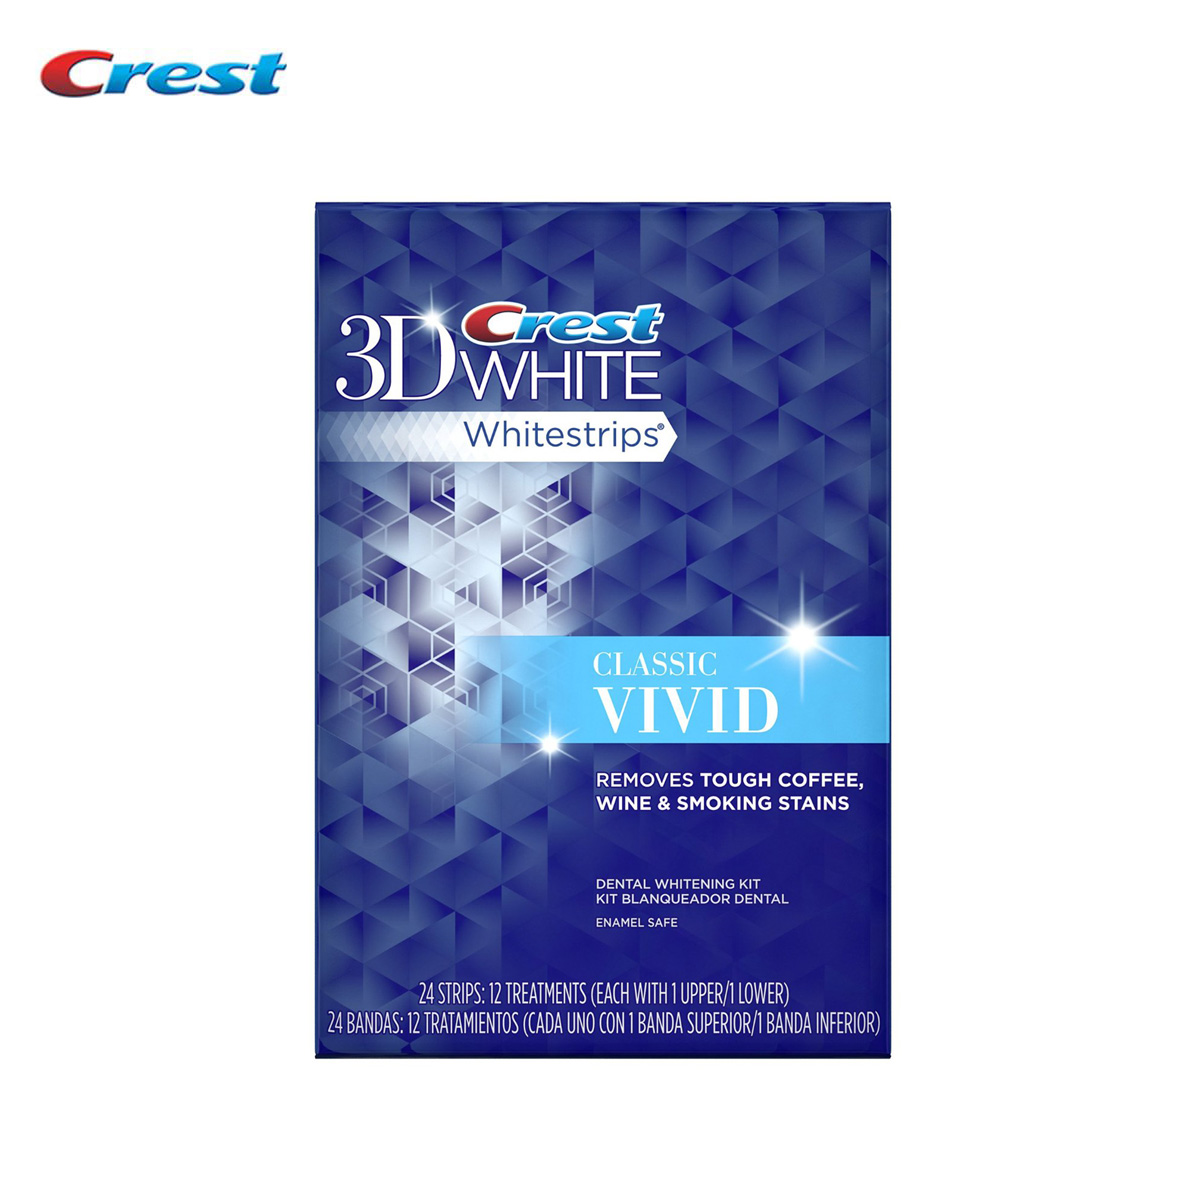 12 treatments/ 24 strips Crest 3D WHITE Classic Vivid Whitestrips Professional Tooth Whitener Oral Care Teeth Whitening 10 pouches crest teeth whitening strips advanced vivid 3d white original oral hygiene tooth whitestrips no box free shipping